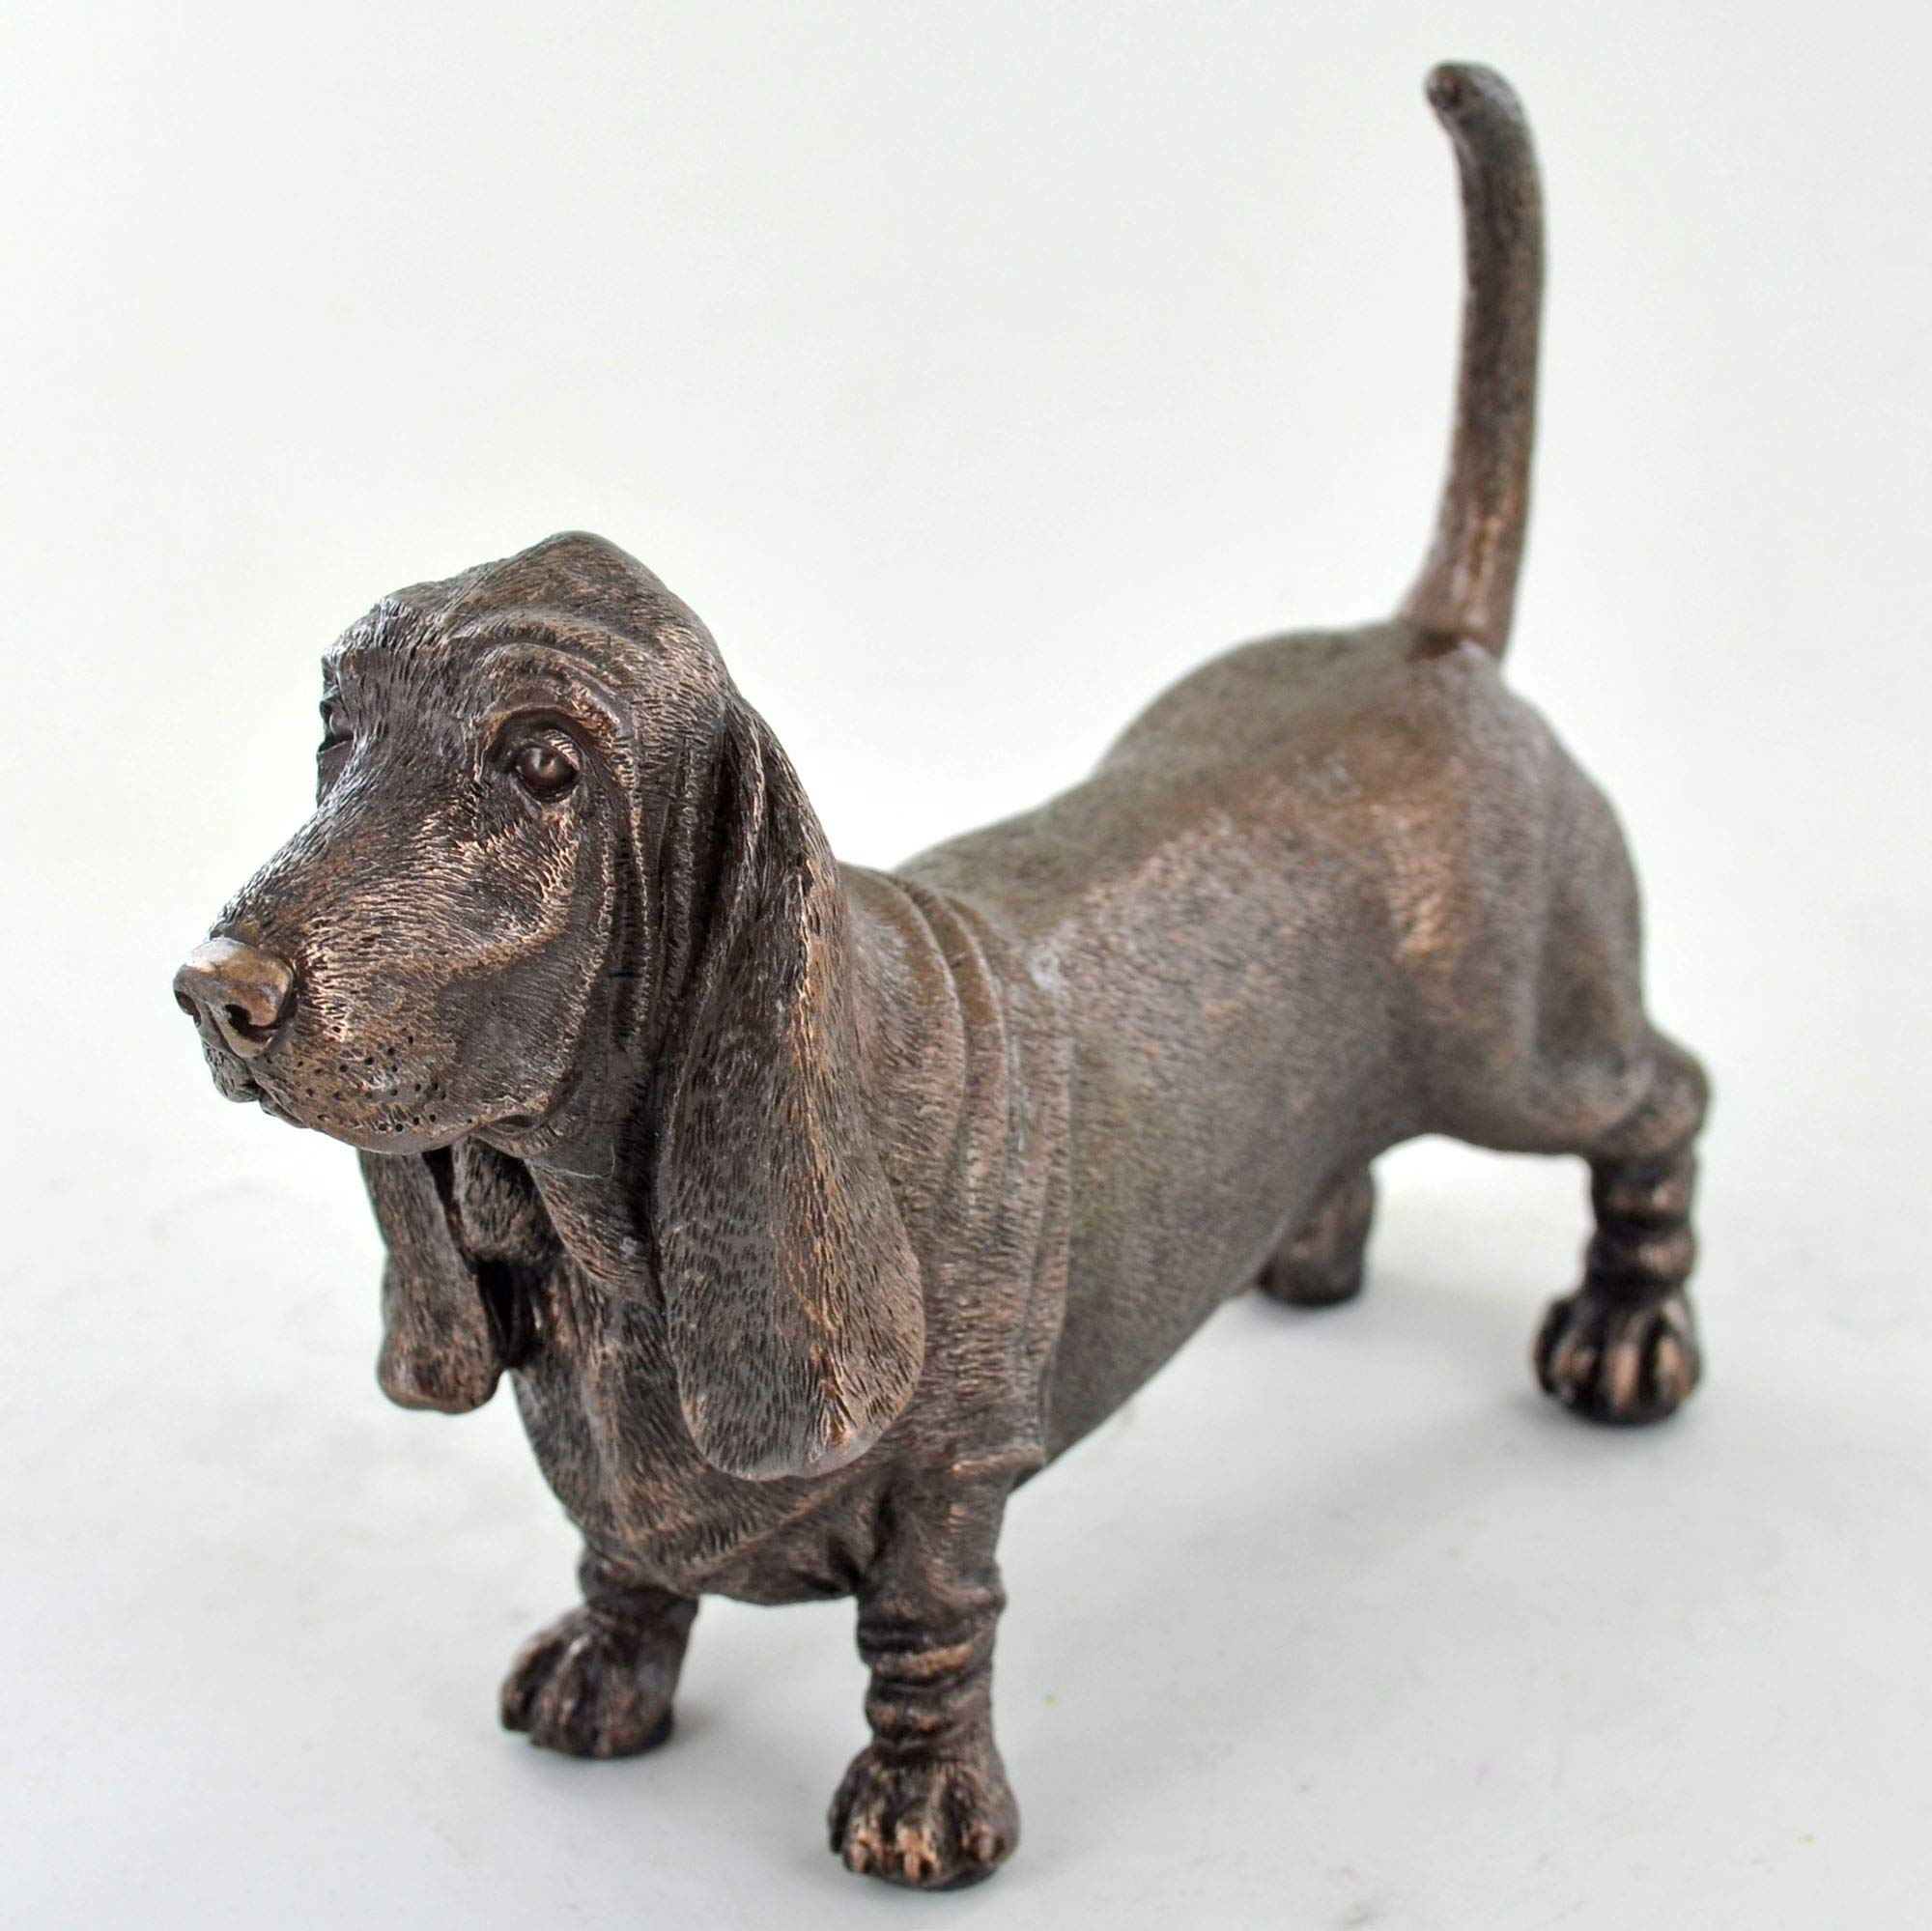 Fiesta Studios Bassett Hound Dog Sculpture Cold Cast Bronze Statue Ornament Figurine Home Decor Pets Gift Idea H12cm